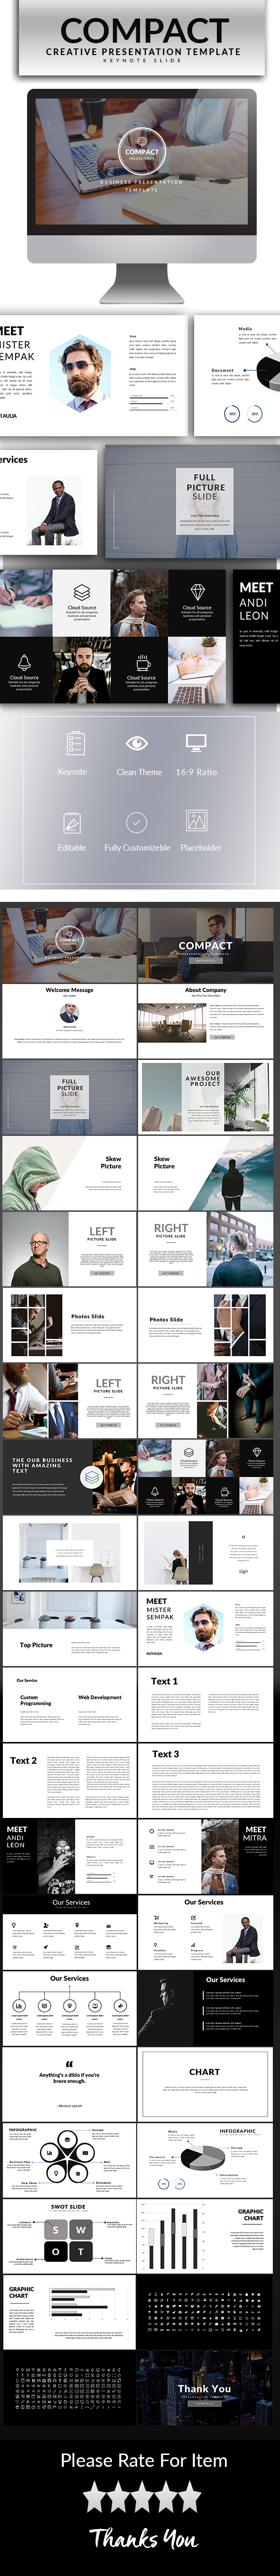 Compact Keynote Template - Keynote Templates Presentation Templates